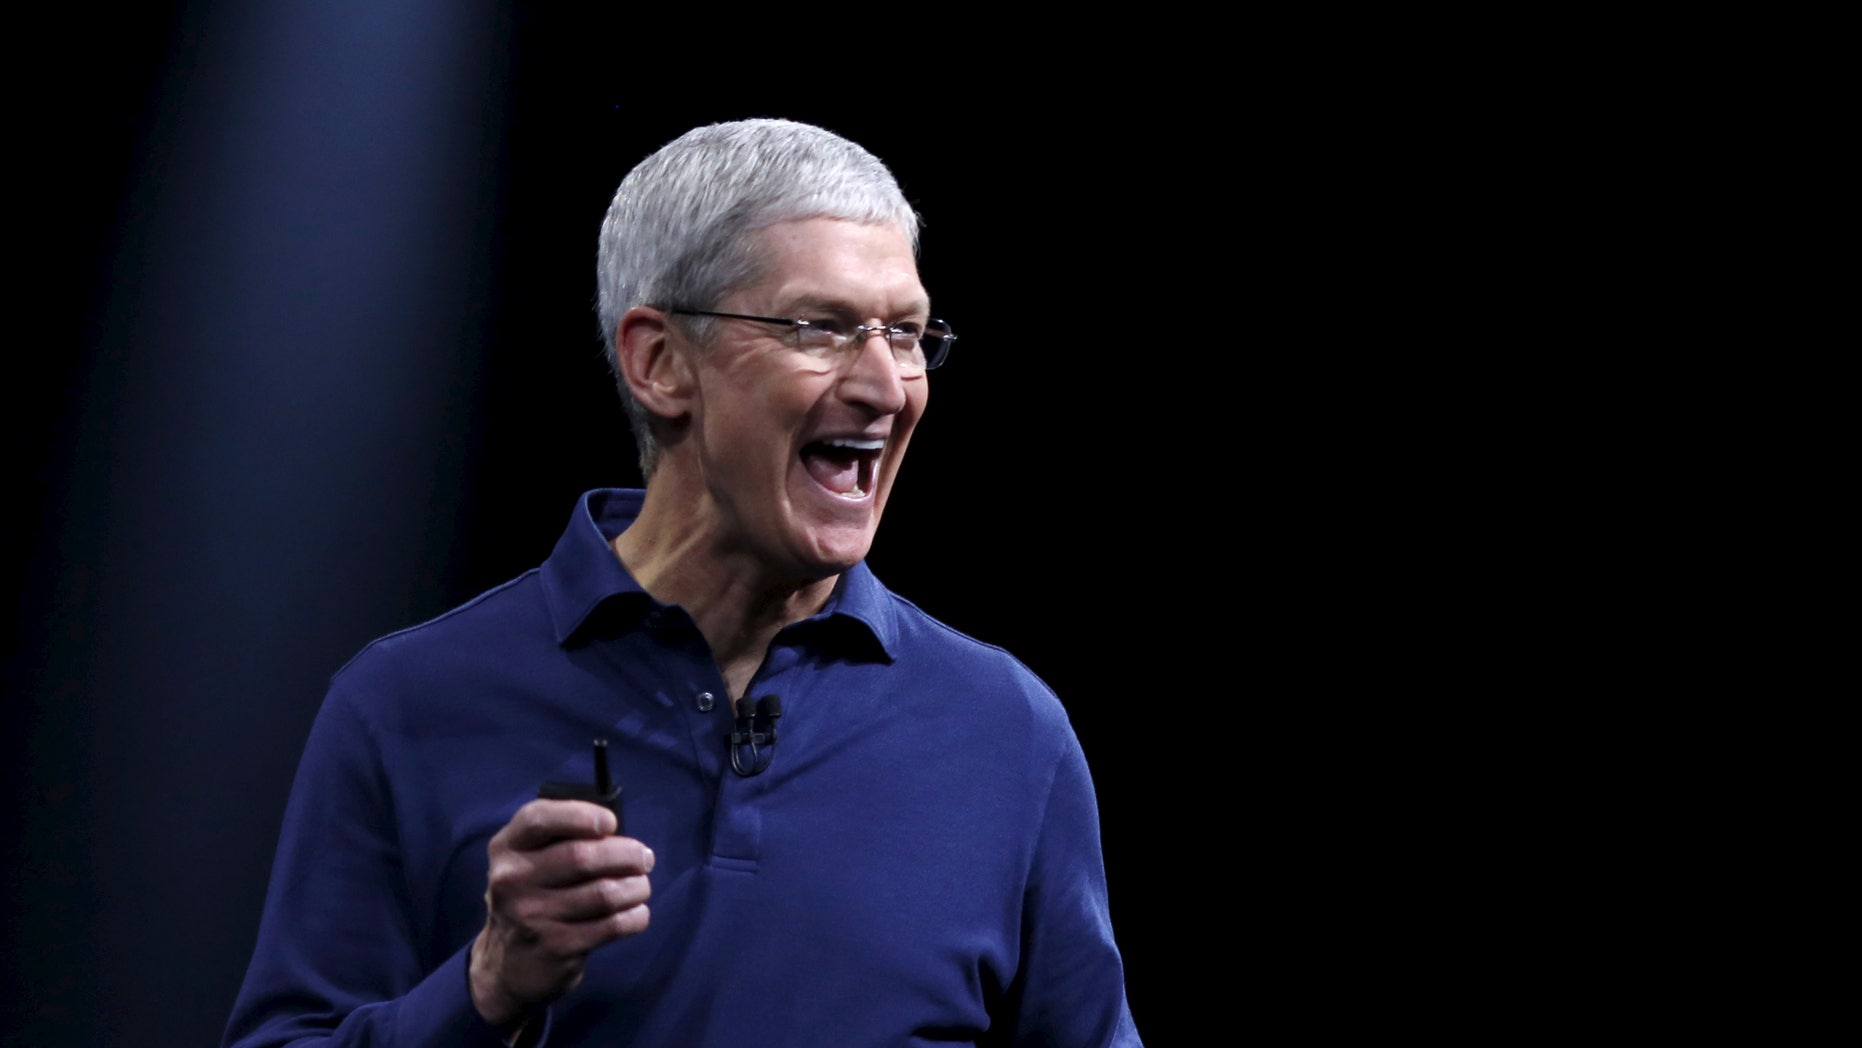 File photo - Apple CEO Tim Cook delivers his keynote address at the Worldwide Developers Conference in San Francisco, California June 8, 2015. (REUTERS/Robert Galbraith).